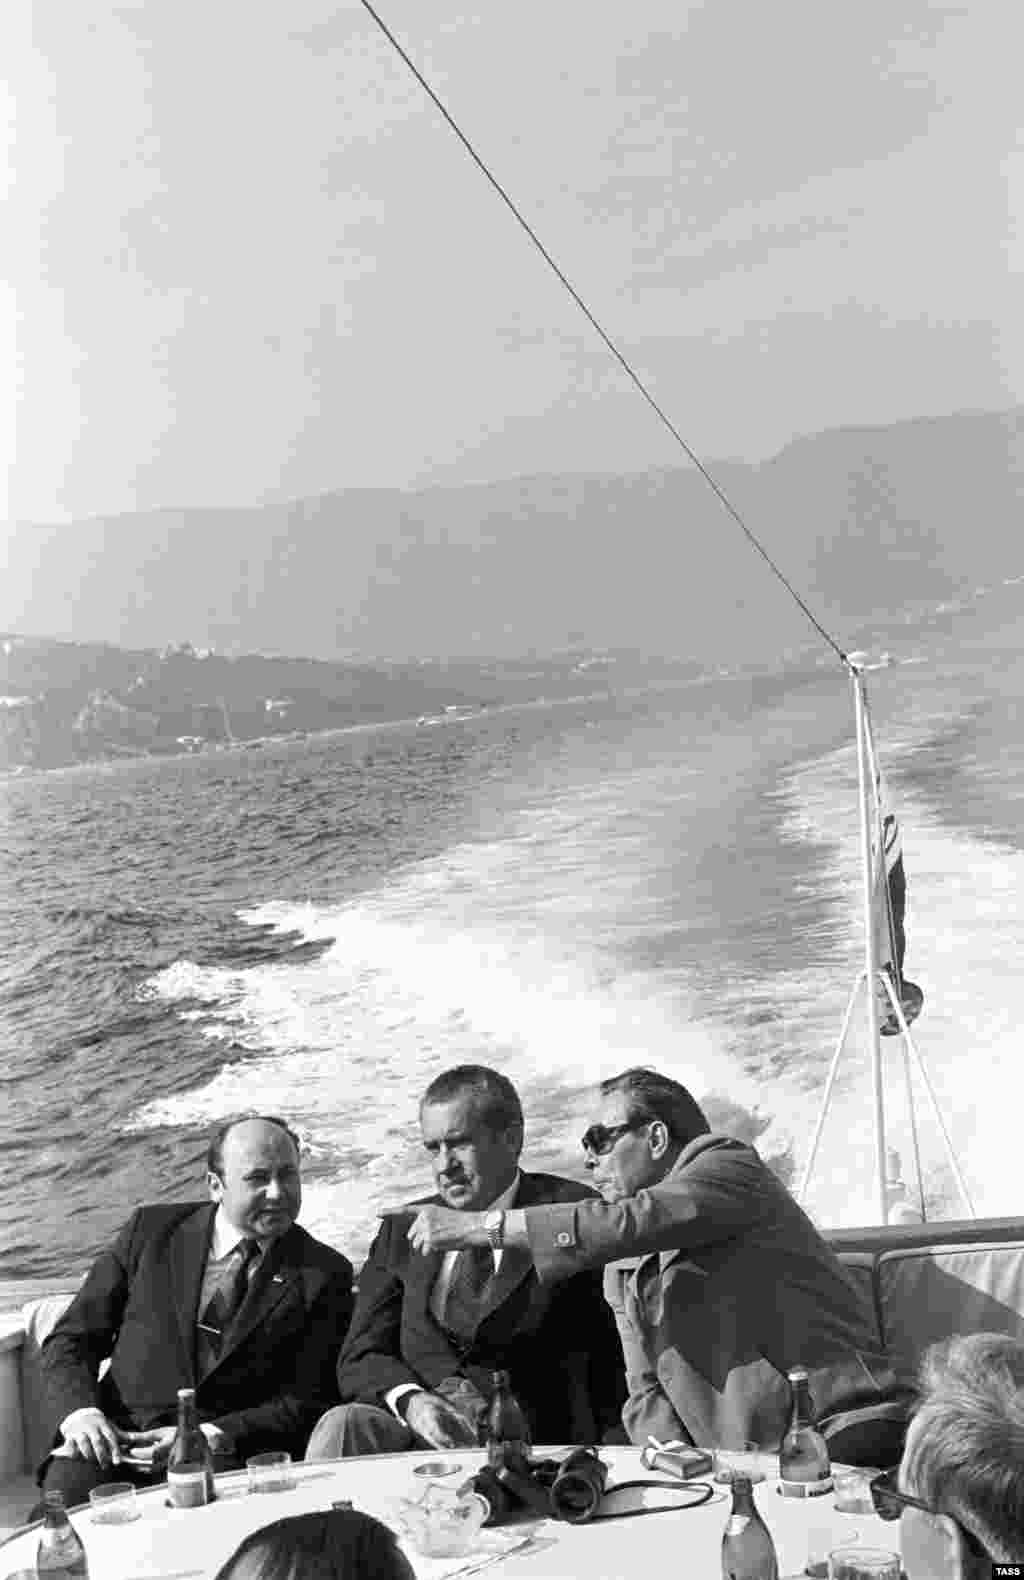 Despite East-West tensions, Brezhnev and U.S. President Richard Nixon shared a suprising number of relaxing moments. The Cold War adversaries went on a Black Sea boat trip during Nixon's trip to Crimea in 1974.